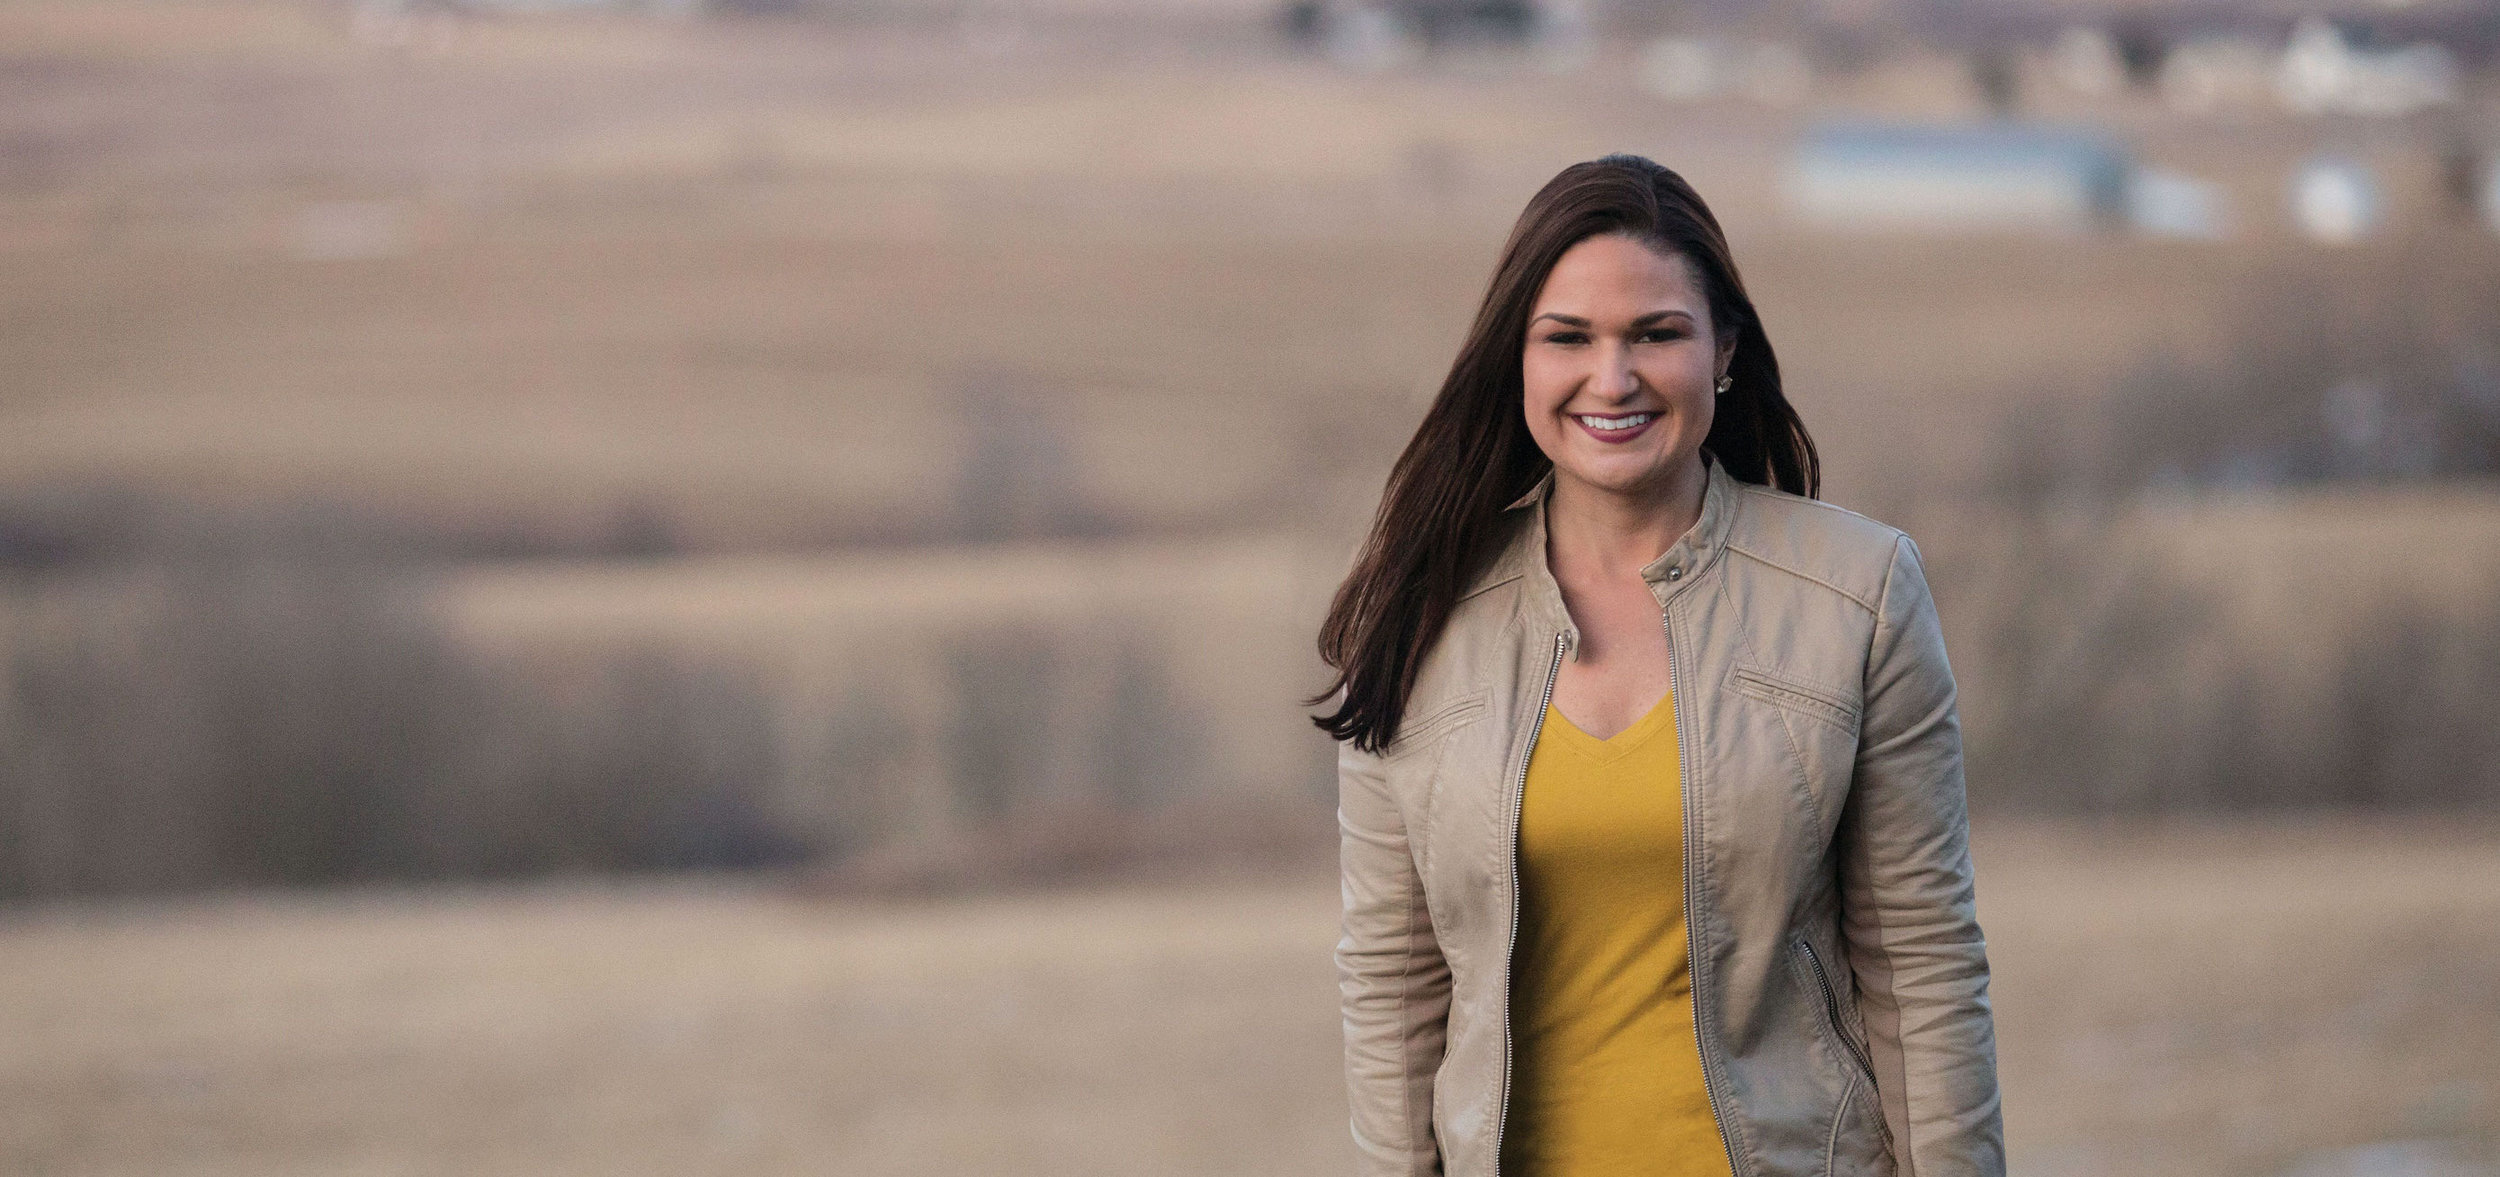 U.S. Representative-Elect Abby Finkenauer, who will serve Iowa's 1st District upon being sworn in next month ( Image )